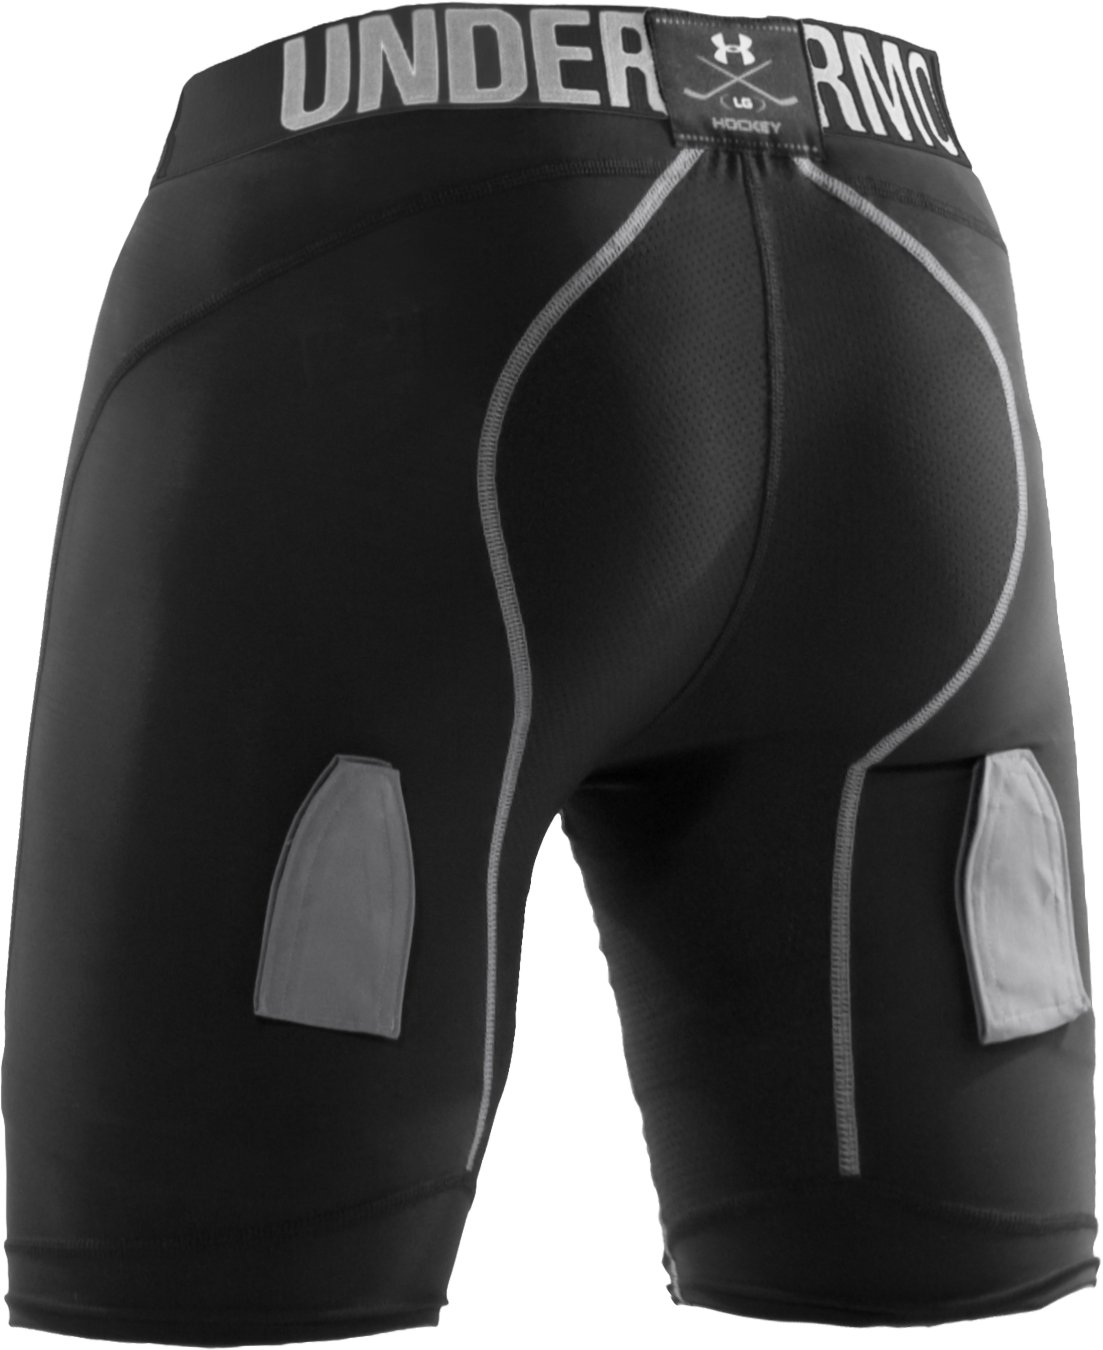 Men's Hockey Compression Shorts W/Cup, Black , undefined